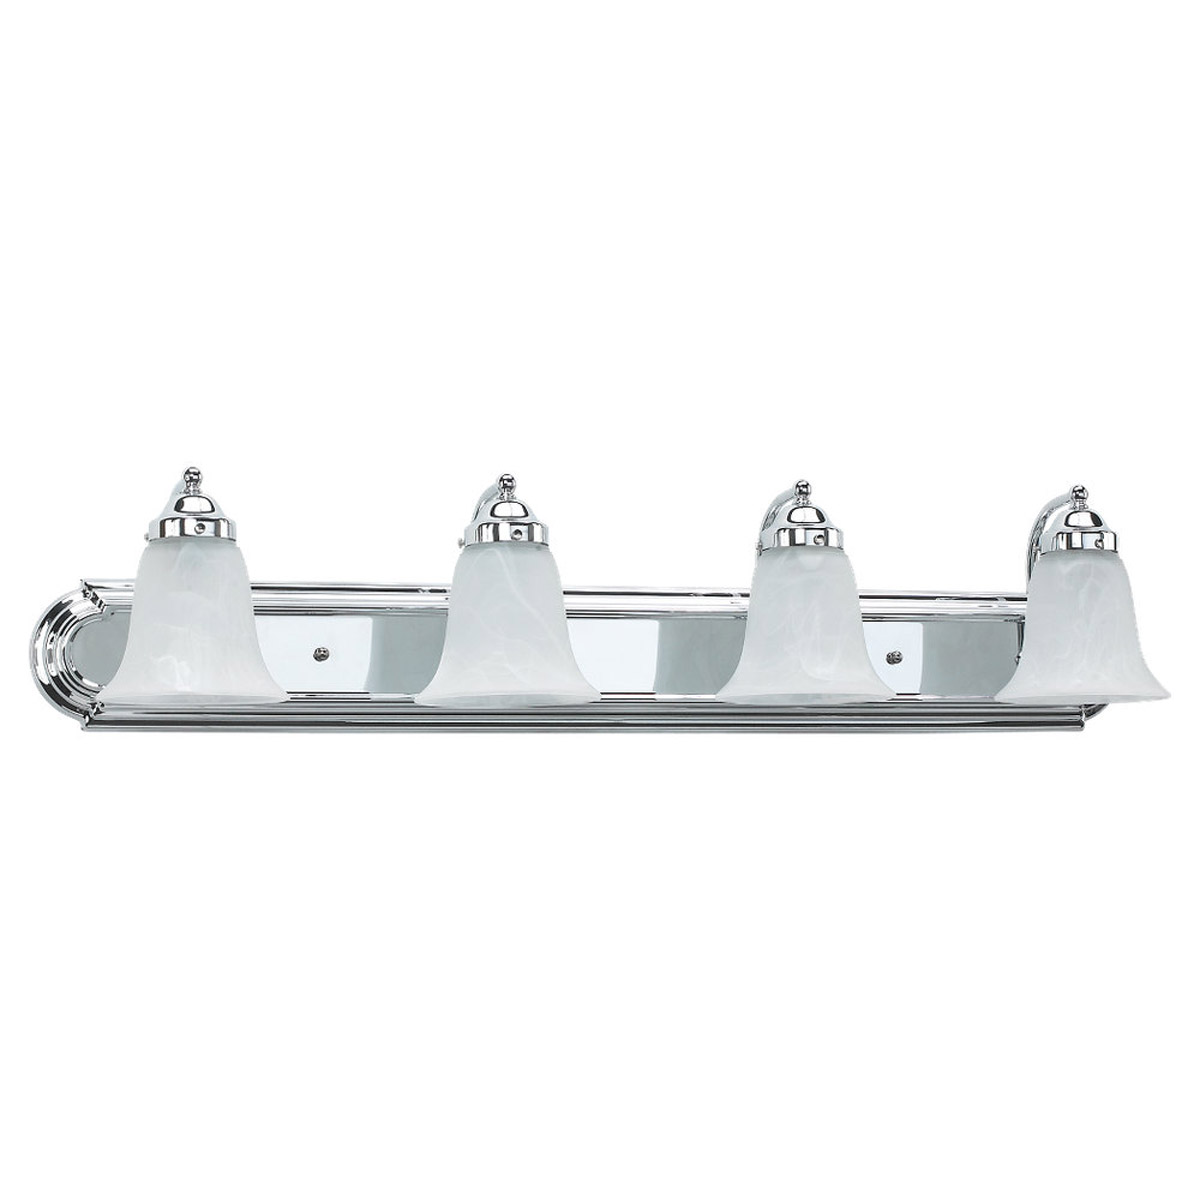 Sea Gull Lighting Astoria 4 Light Bath Vanity in Chrome 49292BLE-05